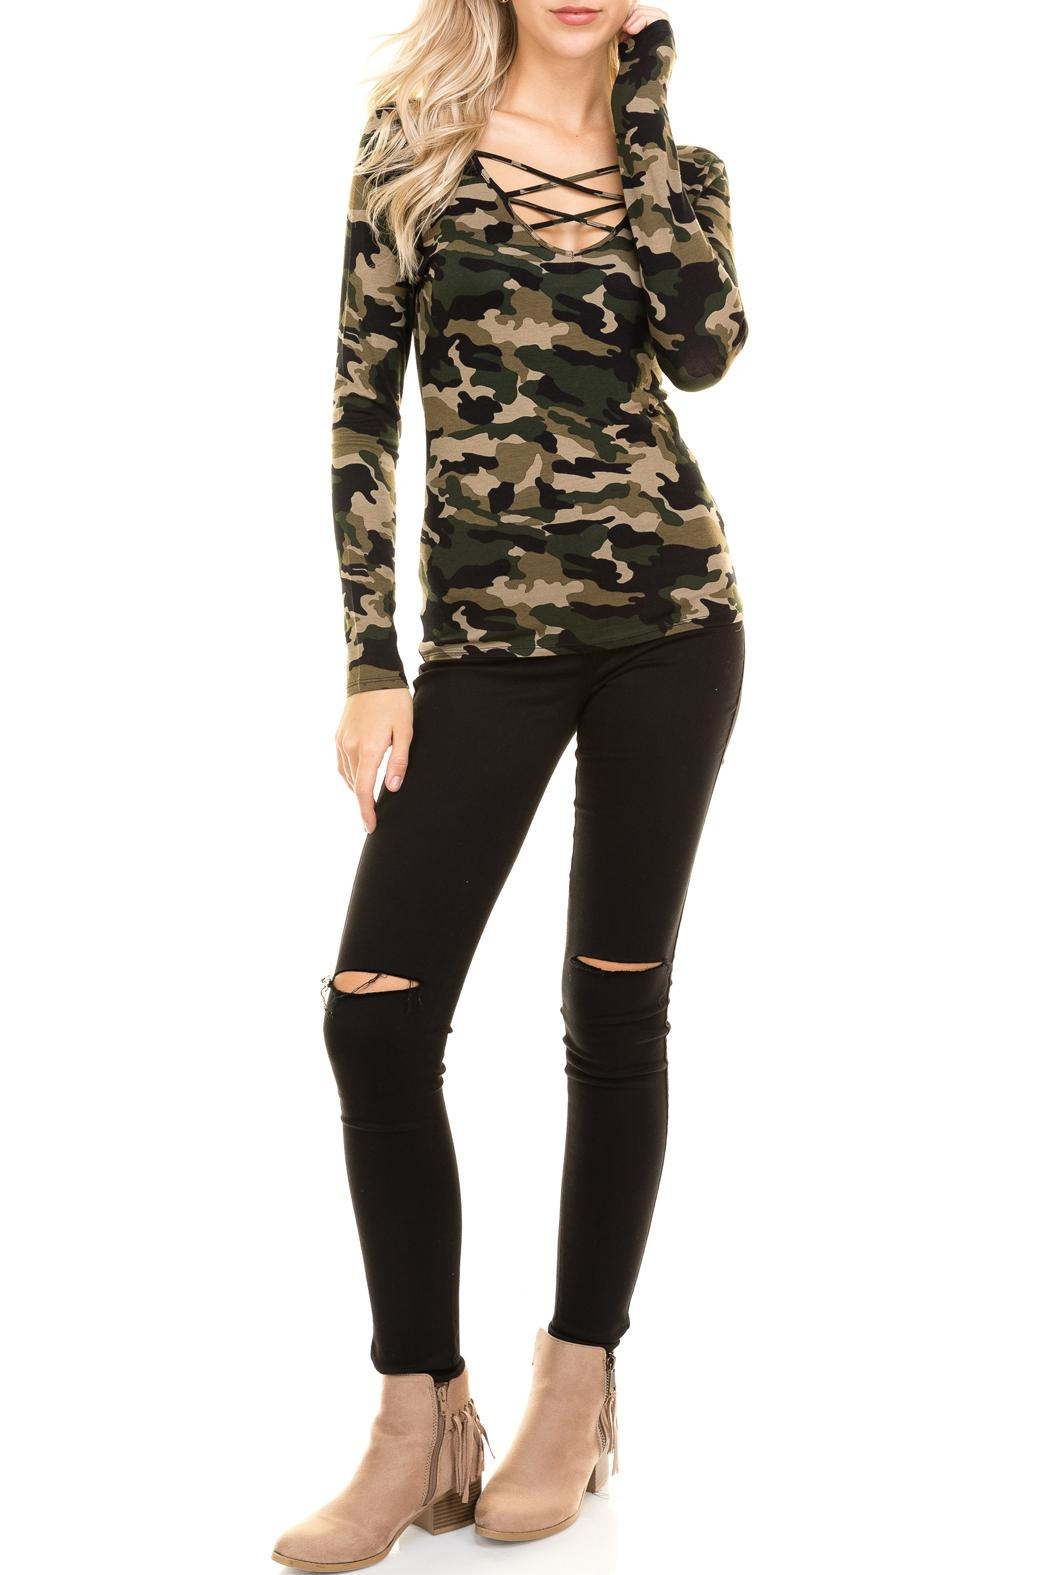 Heart and Hips CrissCross Camouflage Top - Main Image